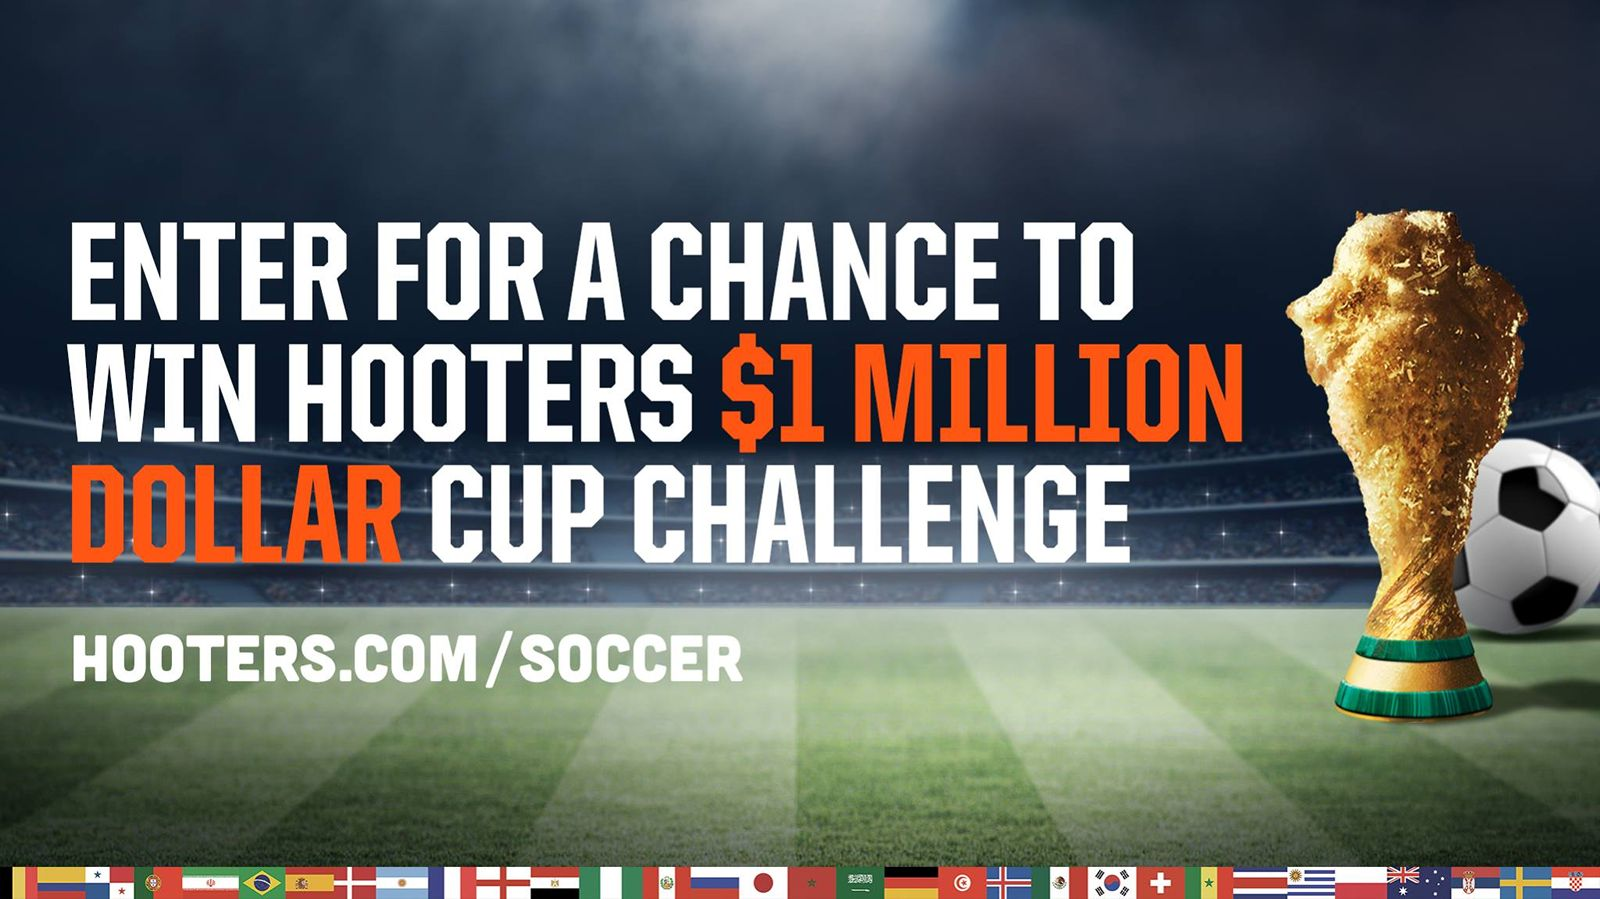 GOAL! Score $1 Million Dollar Grand Prize with Perfect Soccer Bracket in Hooters Cup Challenge Sweepstakes